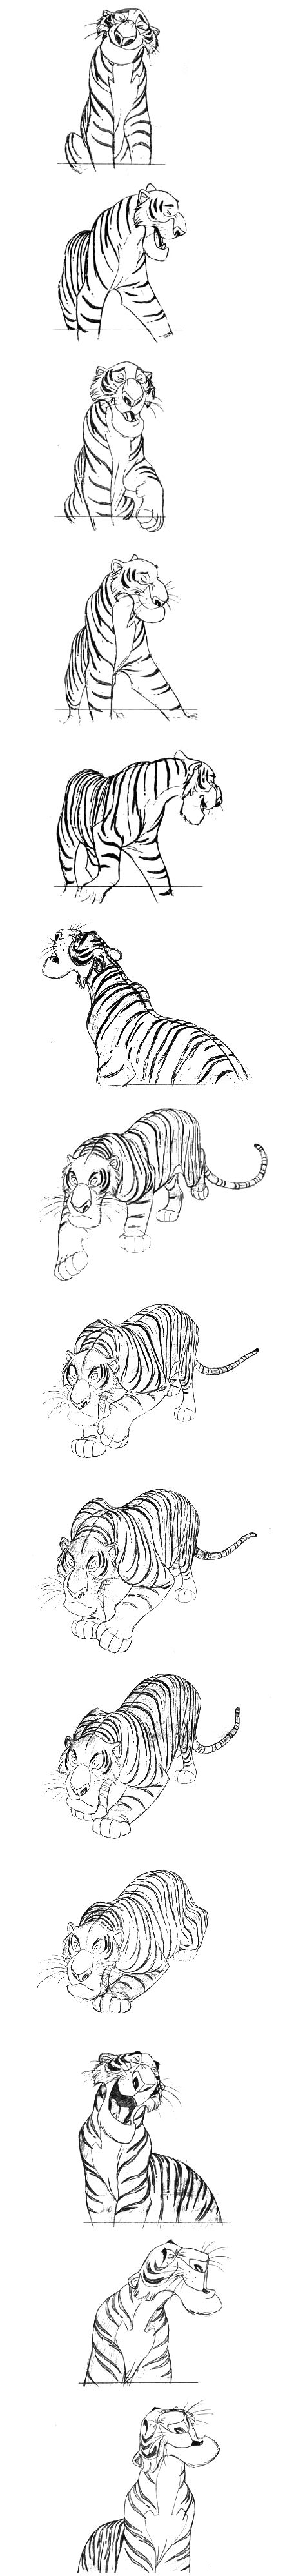 """Shere Khan"" by Milt Kahl ""The Jungle Book"" © Walt Disney Animation Studios Blog/Website (www.disneyanimation.com)"